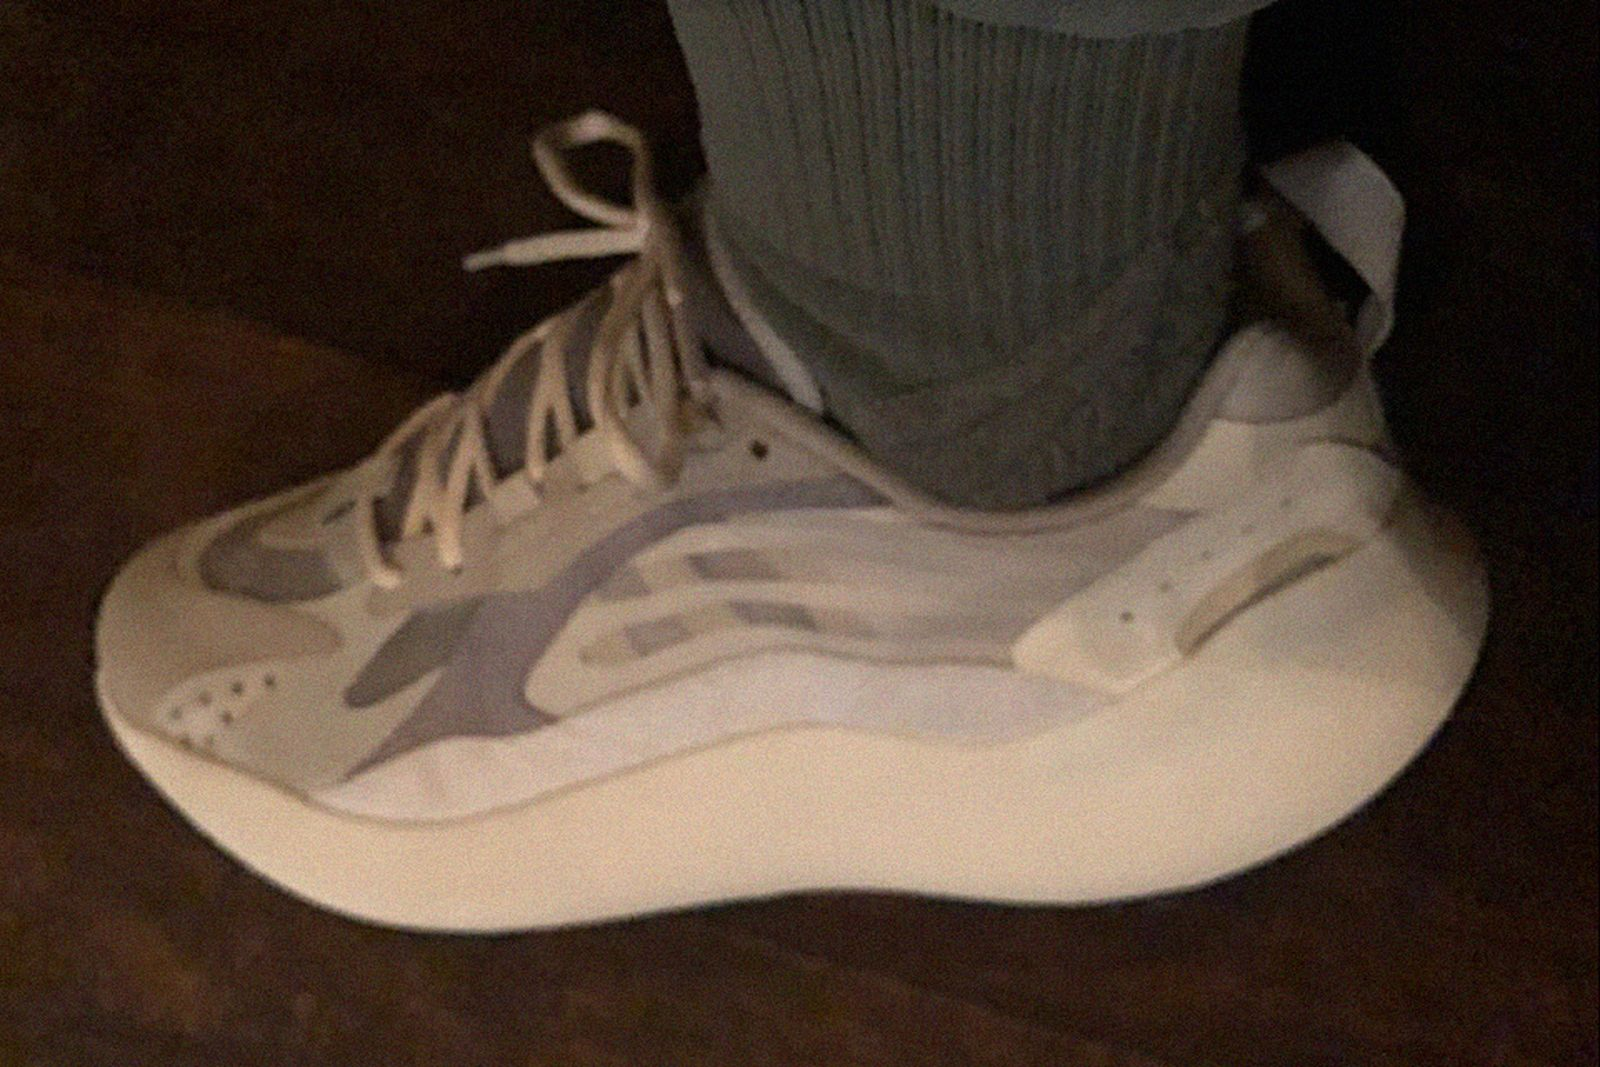 kanye west yeezy boost 700 v3 first look Adidas